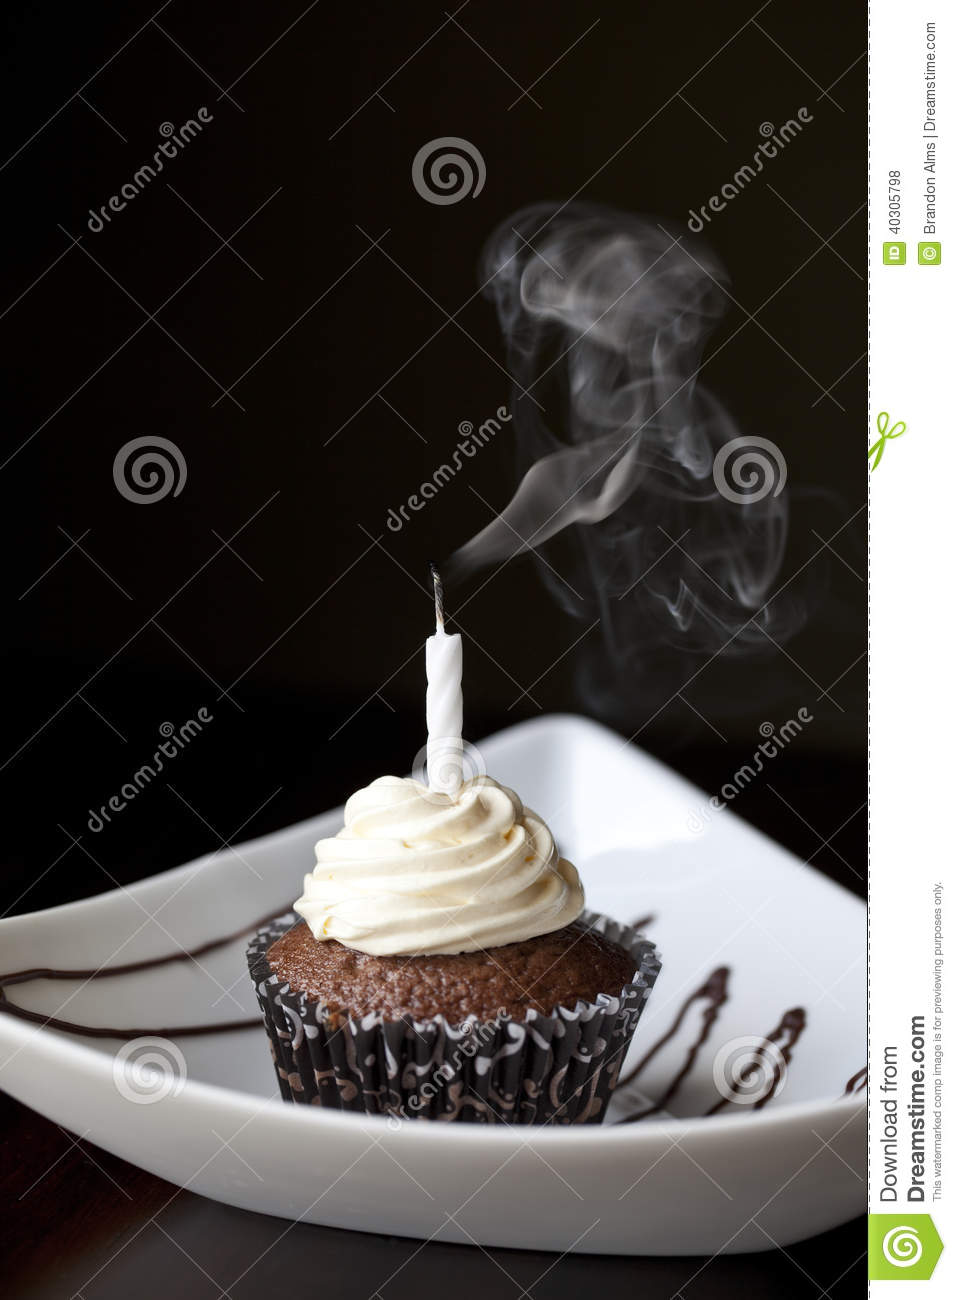 Chocolate Cupcake with Extinguished Birthday Candle